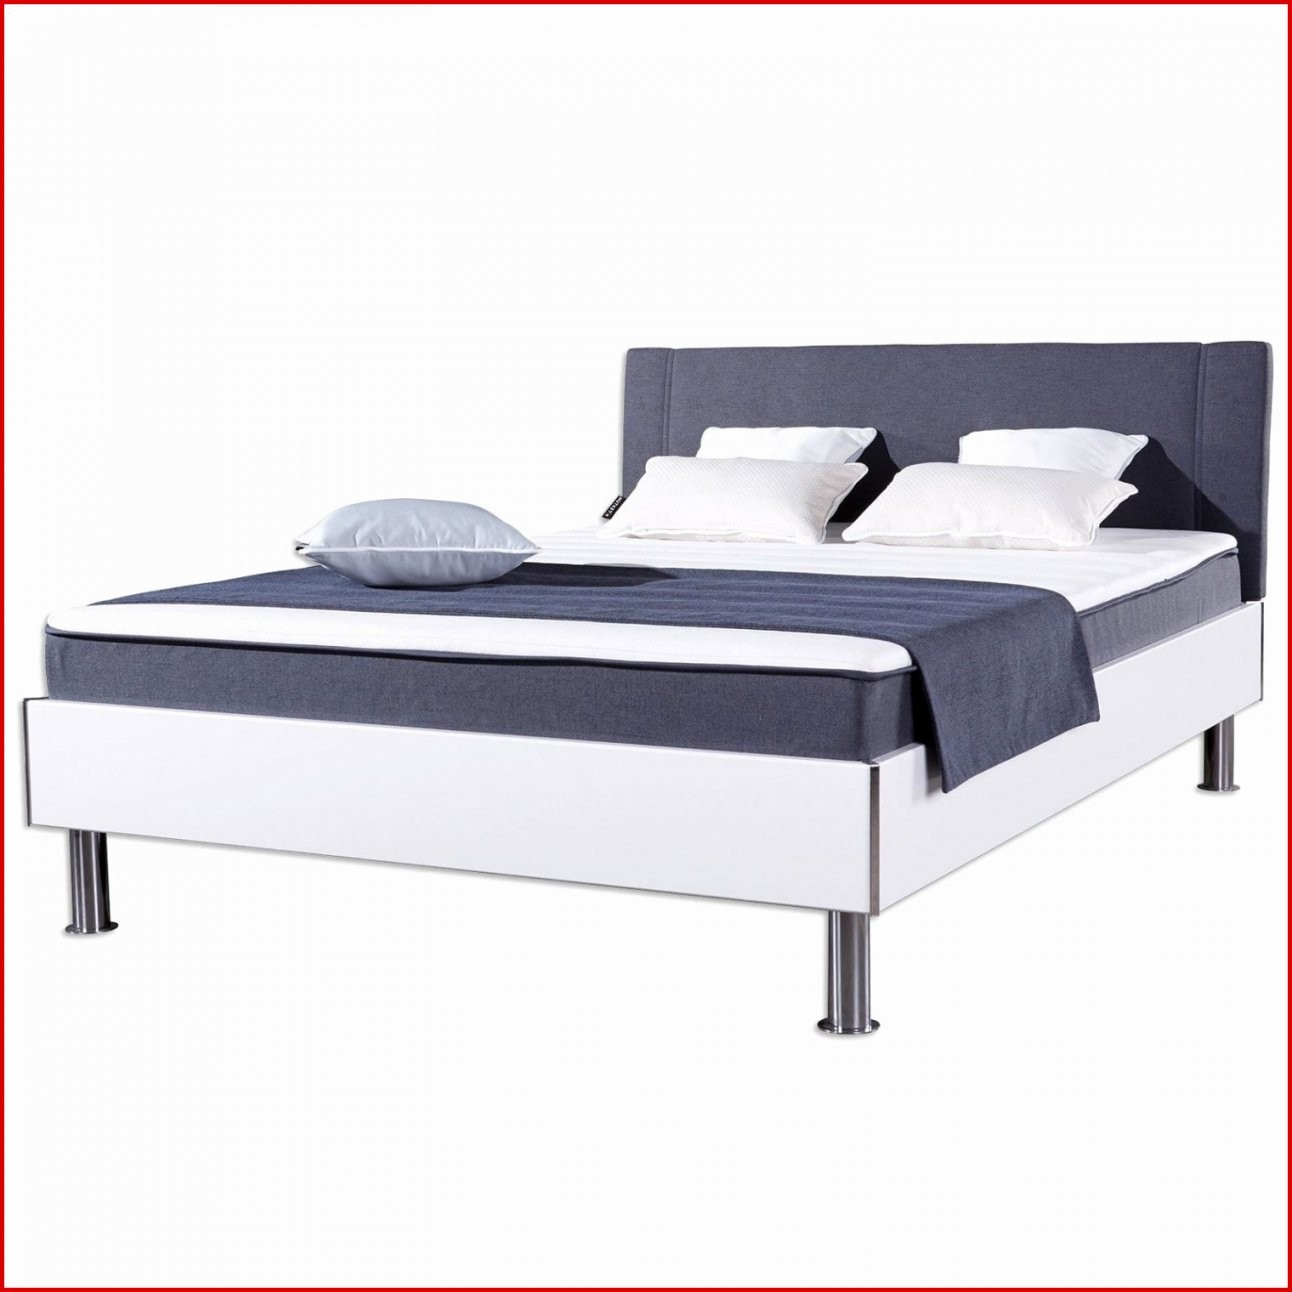 Poco Bett 120×200 Best Of Groß Bett 90 200 Funktionsbett 90×200 von Bett 120X200 Poco Photo